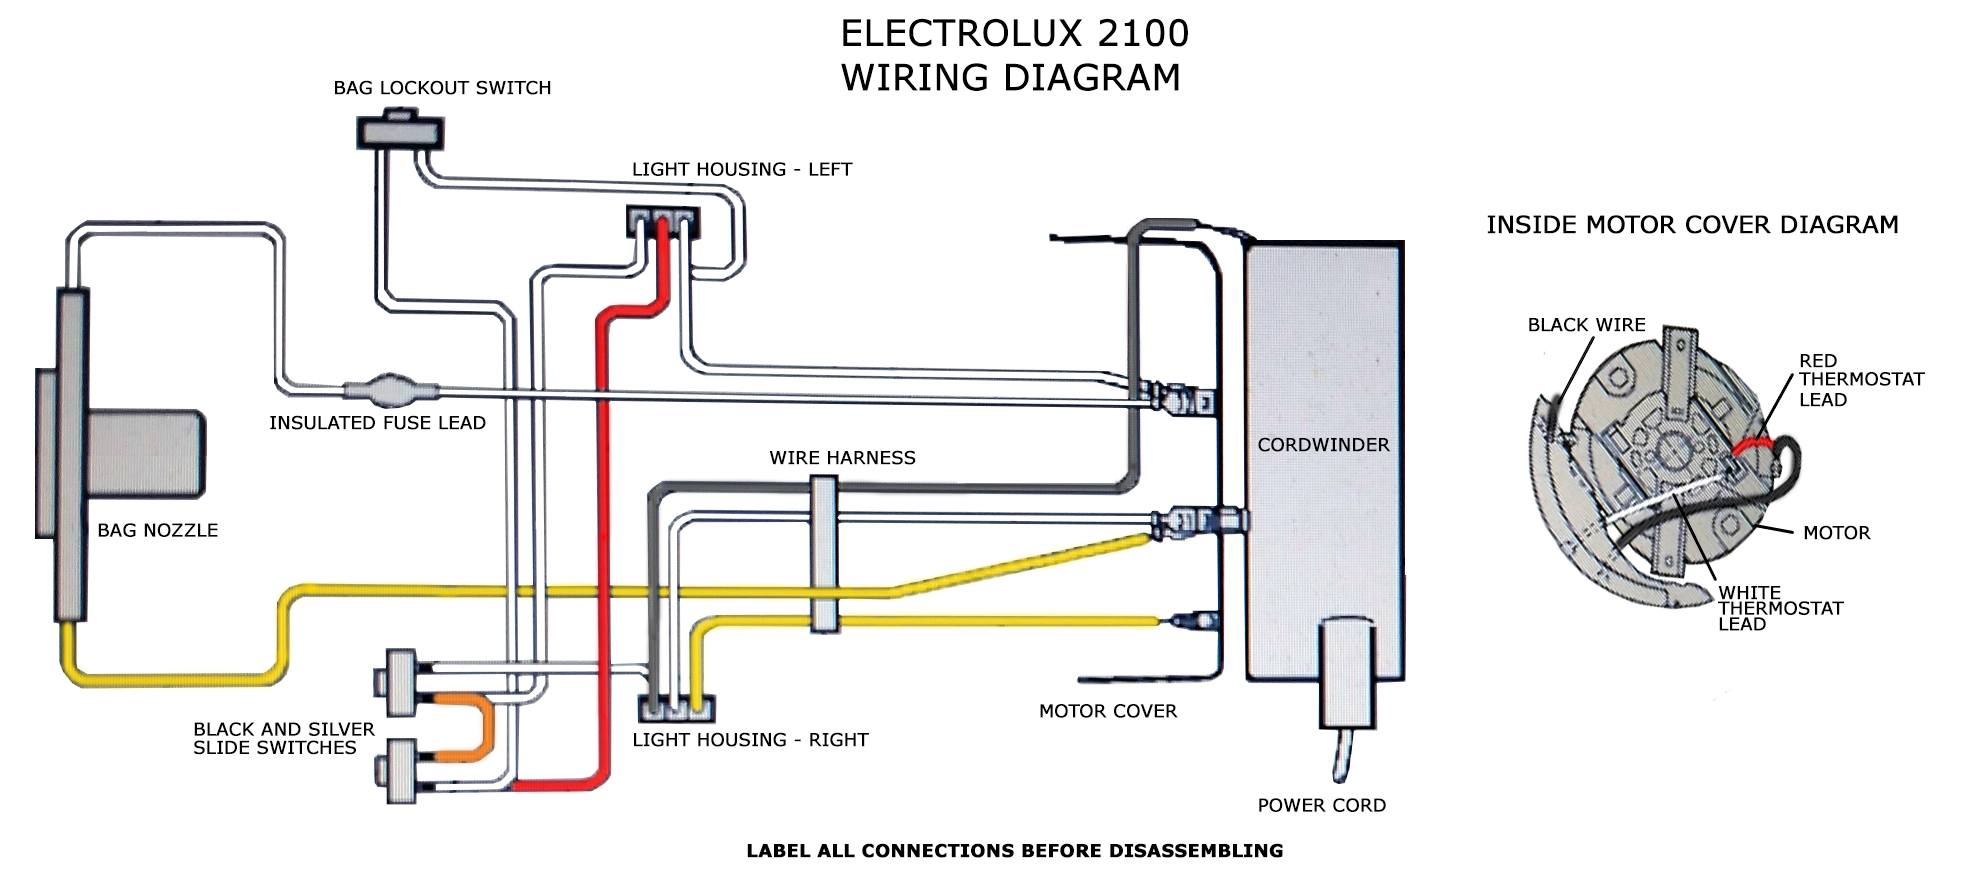 2100 wiring diagram jpg rh blog evacuumstore com wiring for central vacuum nutone central vacuum wiring